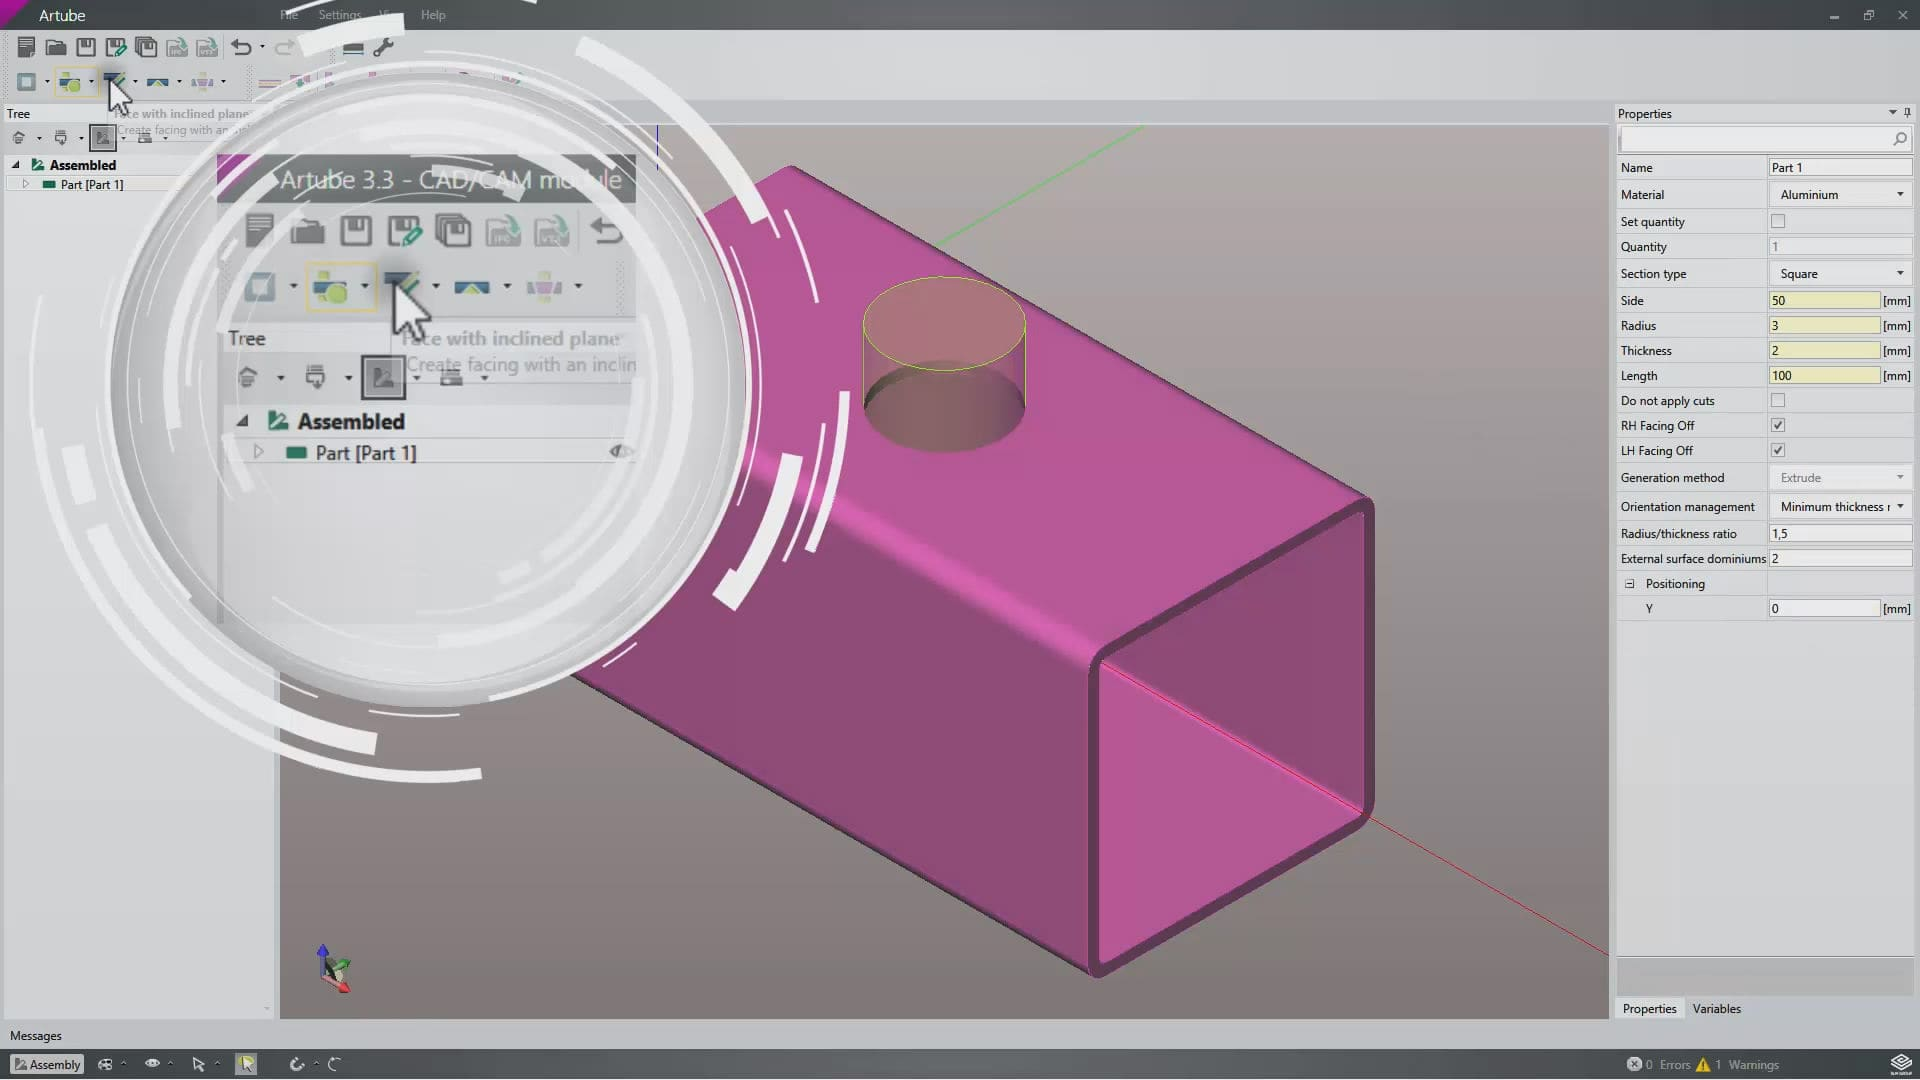 Cad Cam Software For Tube Cutting Machines 3d Artube Blm Group Diagram